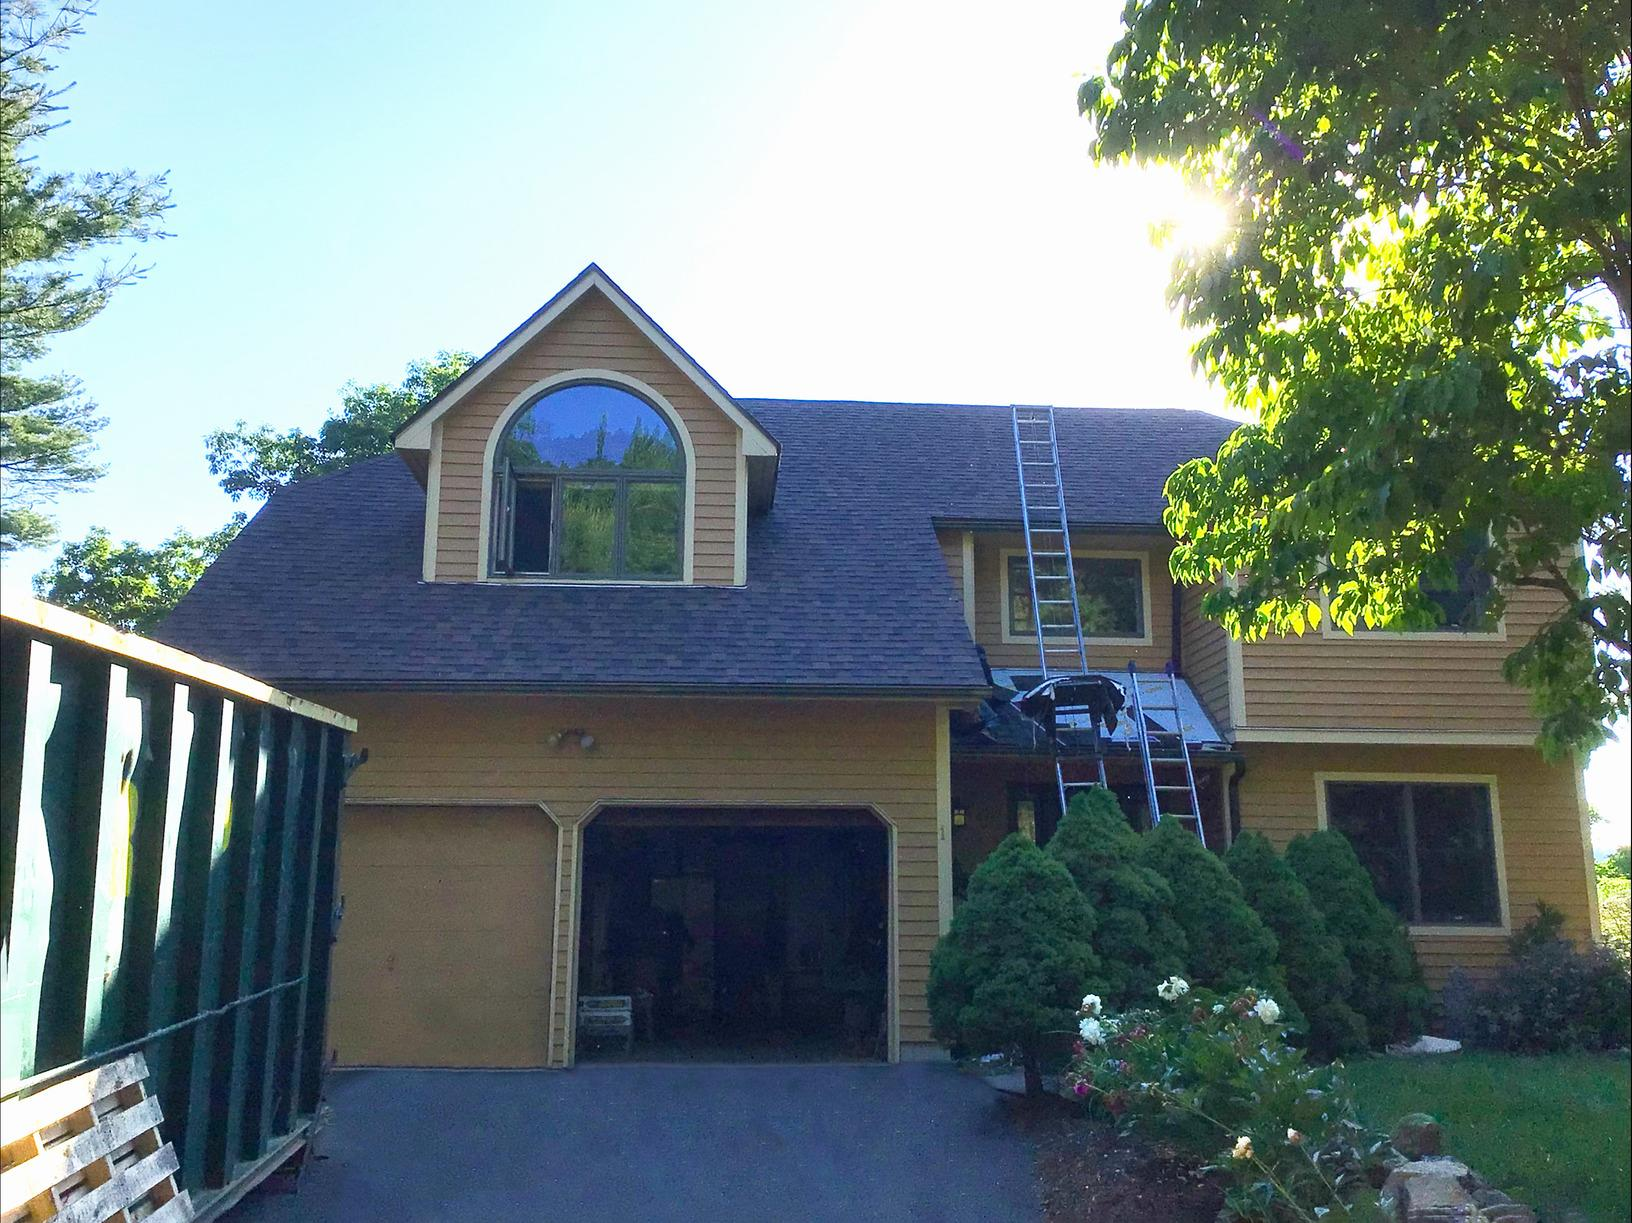 Shadow Brown Roof Replacement in Tuxedo Park, NY - After Photo